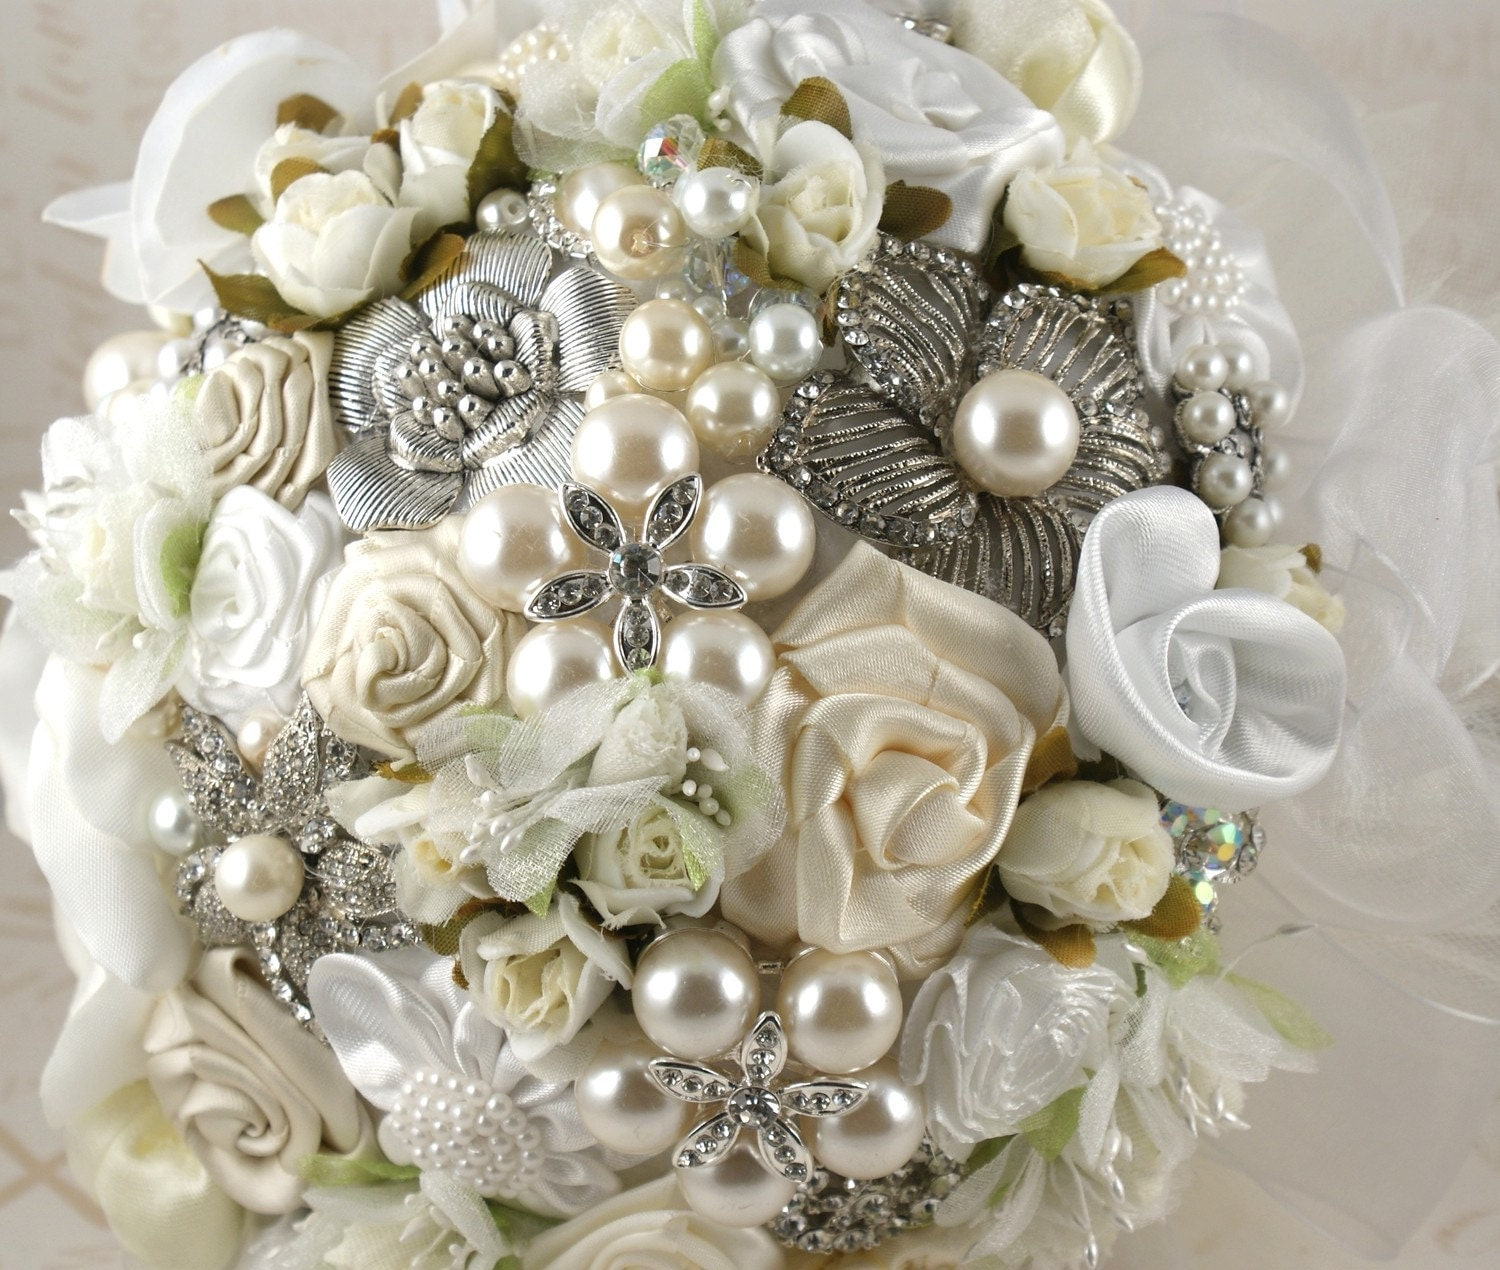 Brooch bouquet for wedding...which to choose? Or go back to fresh flowers? :  wedding Il 570xN.228935543.jpg